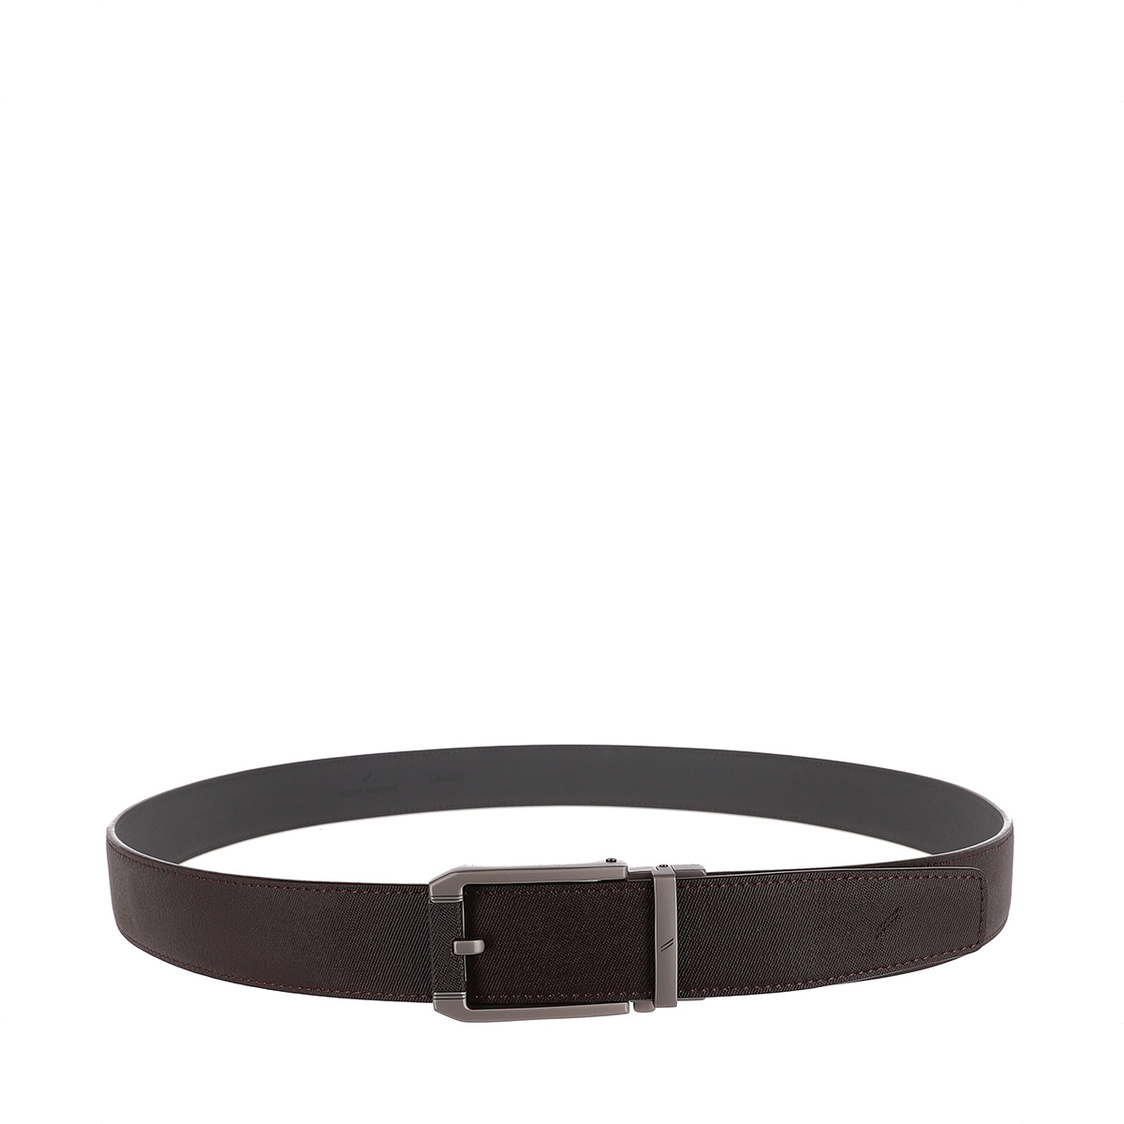 Slim Auto Lock Belt 125cm in Brown